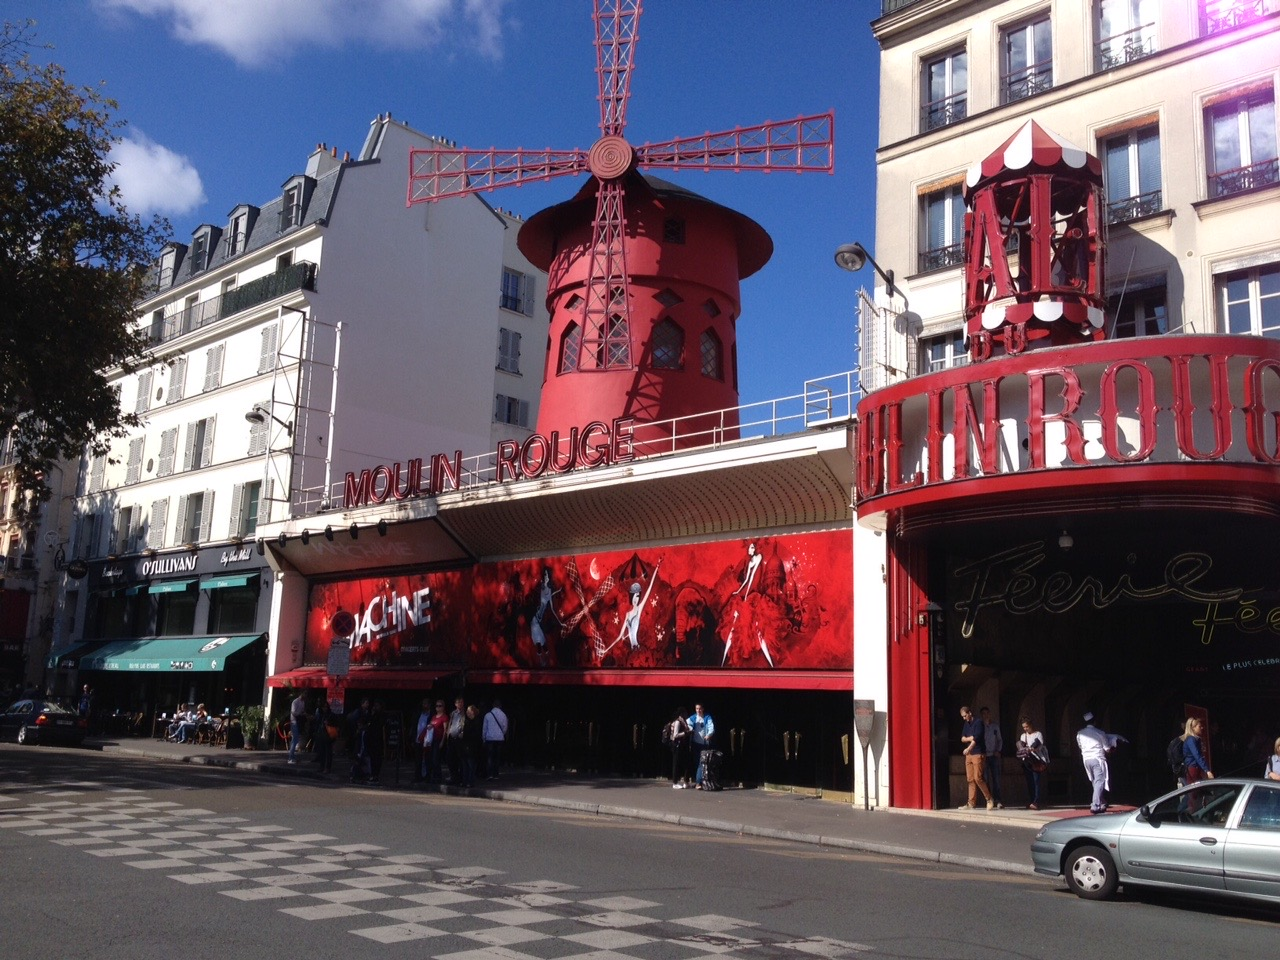 The iconic Moulin Rouge...a bit seedy and tired looking these days, but many good kabob shops in the neighborhood.